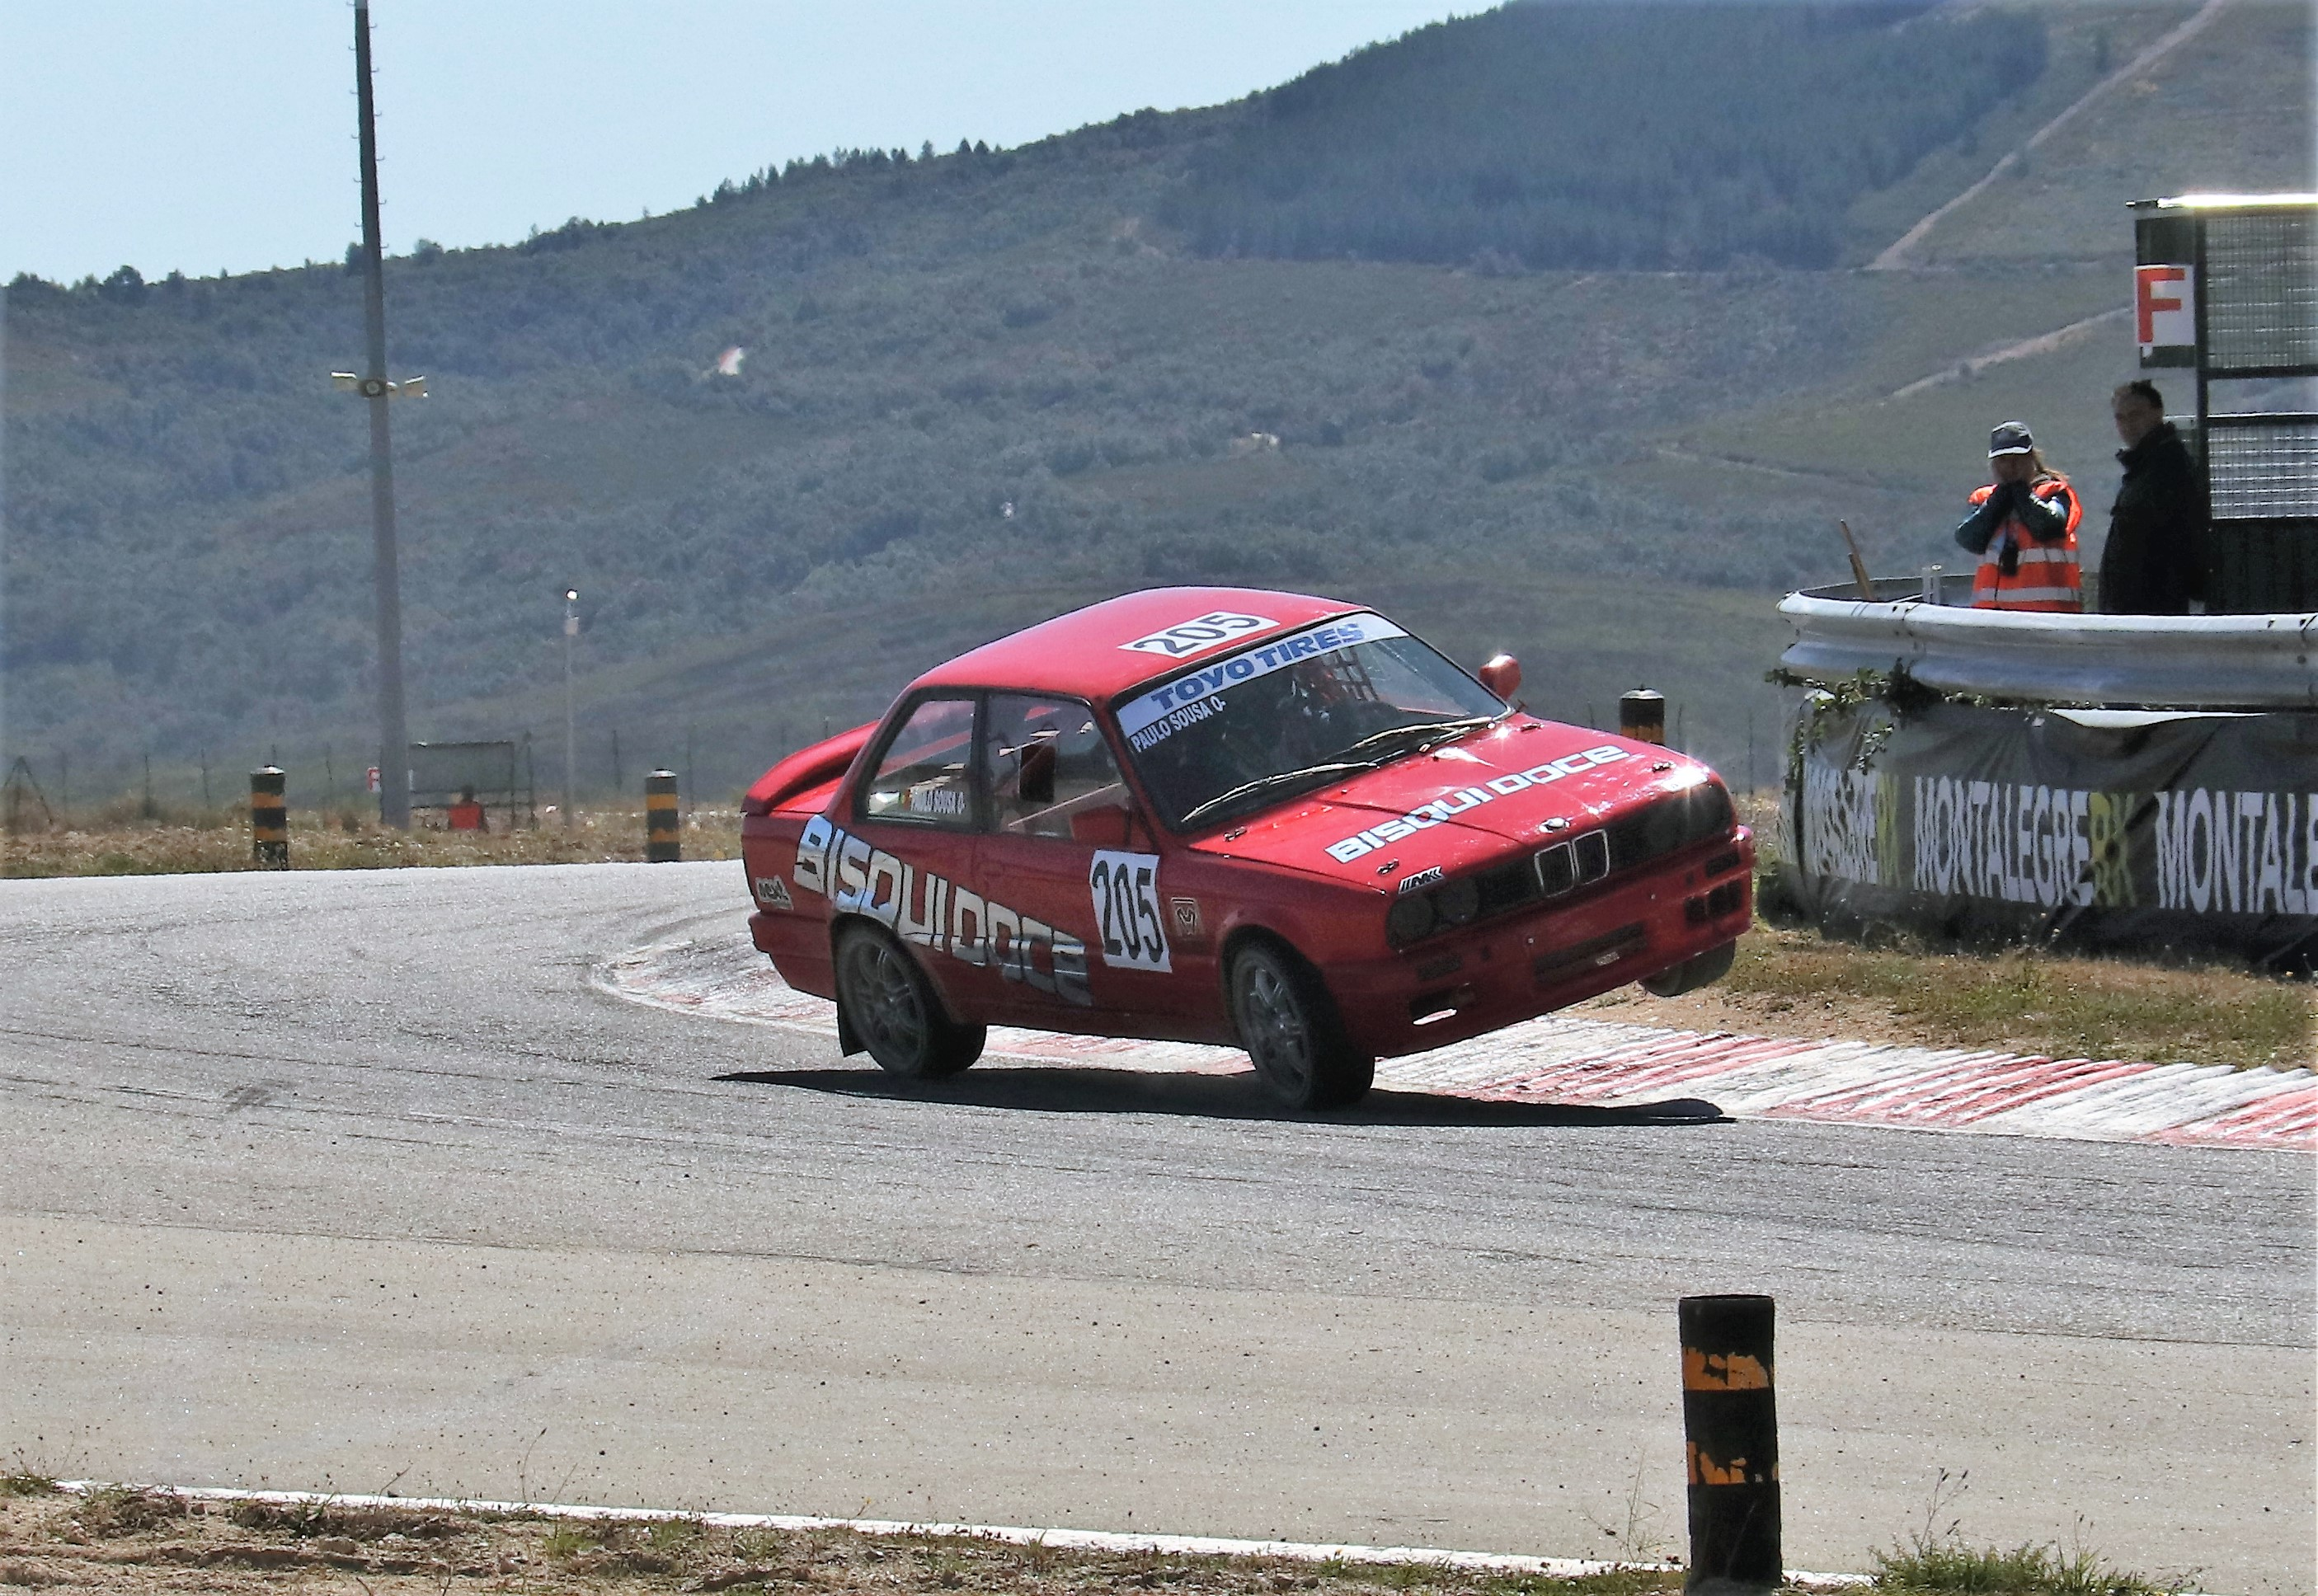 Ralicross Montalegre 2 – Domingo